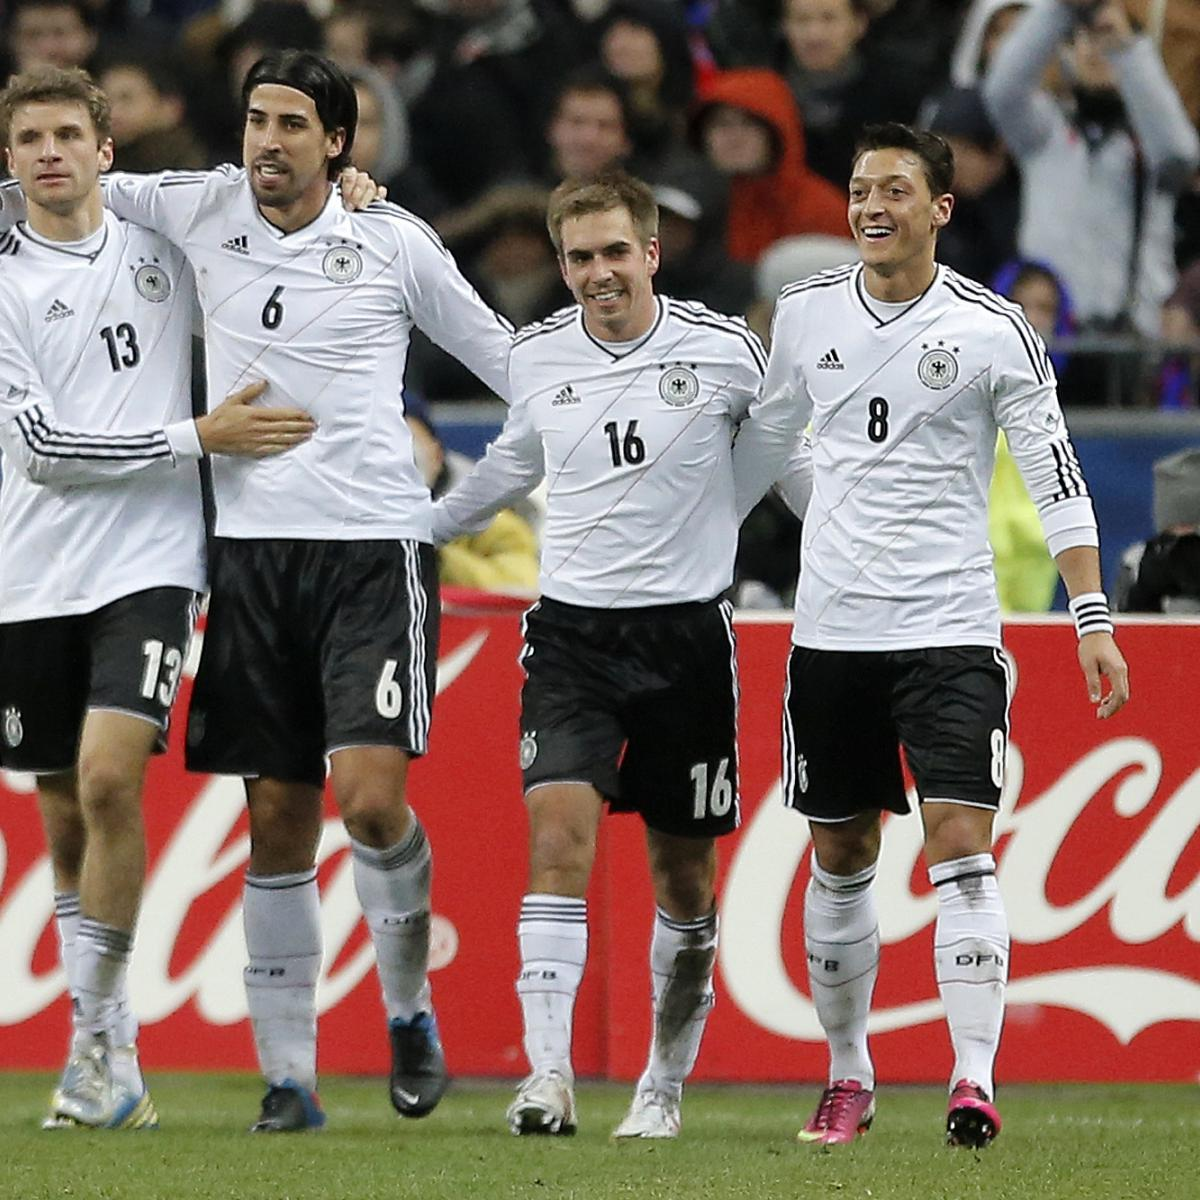 Germany World Cup Roster 2014 Starting Xi And Squad Analysis Bleacher Report Latest News Videos And Highlights